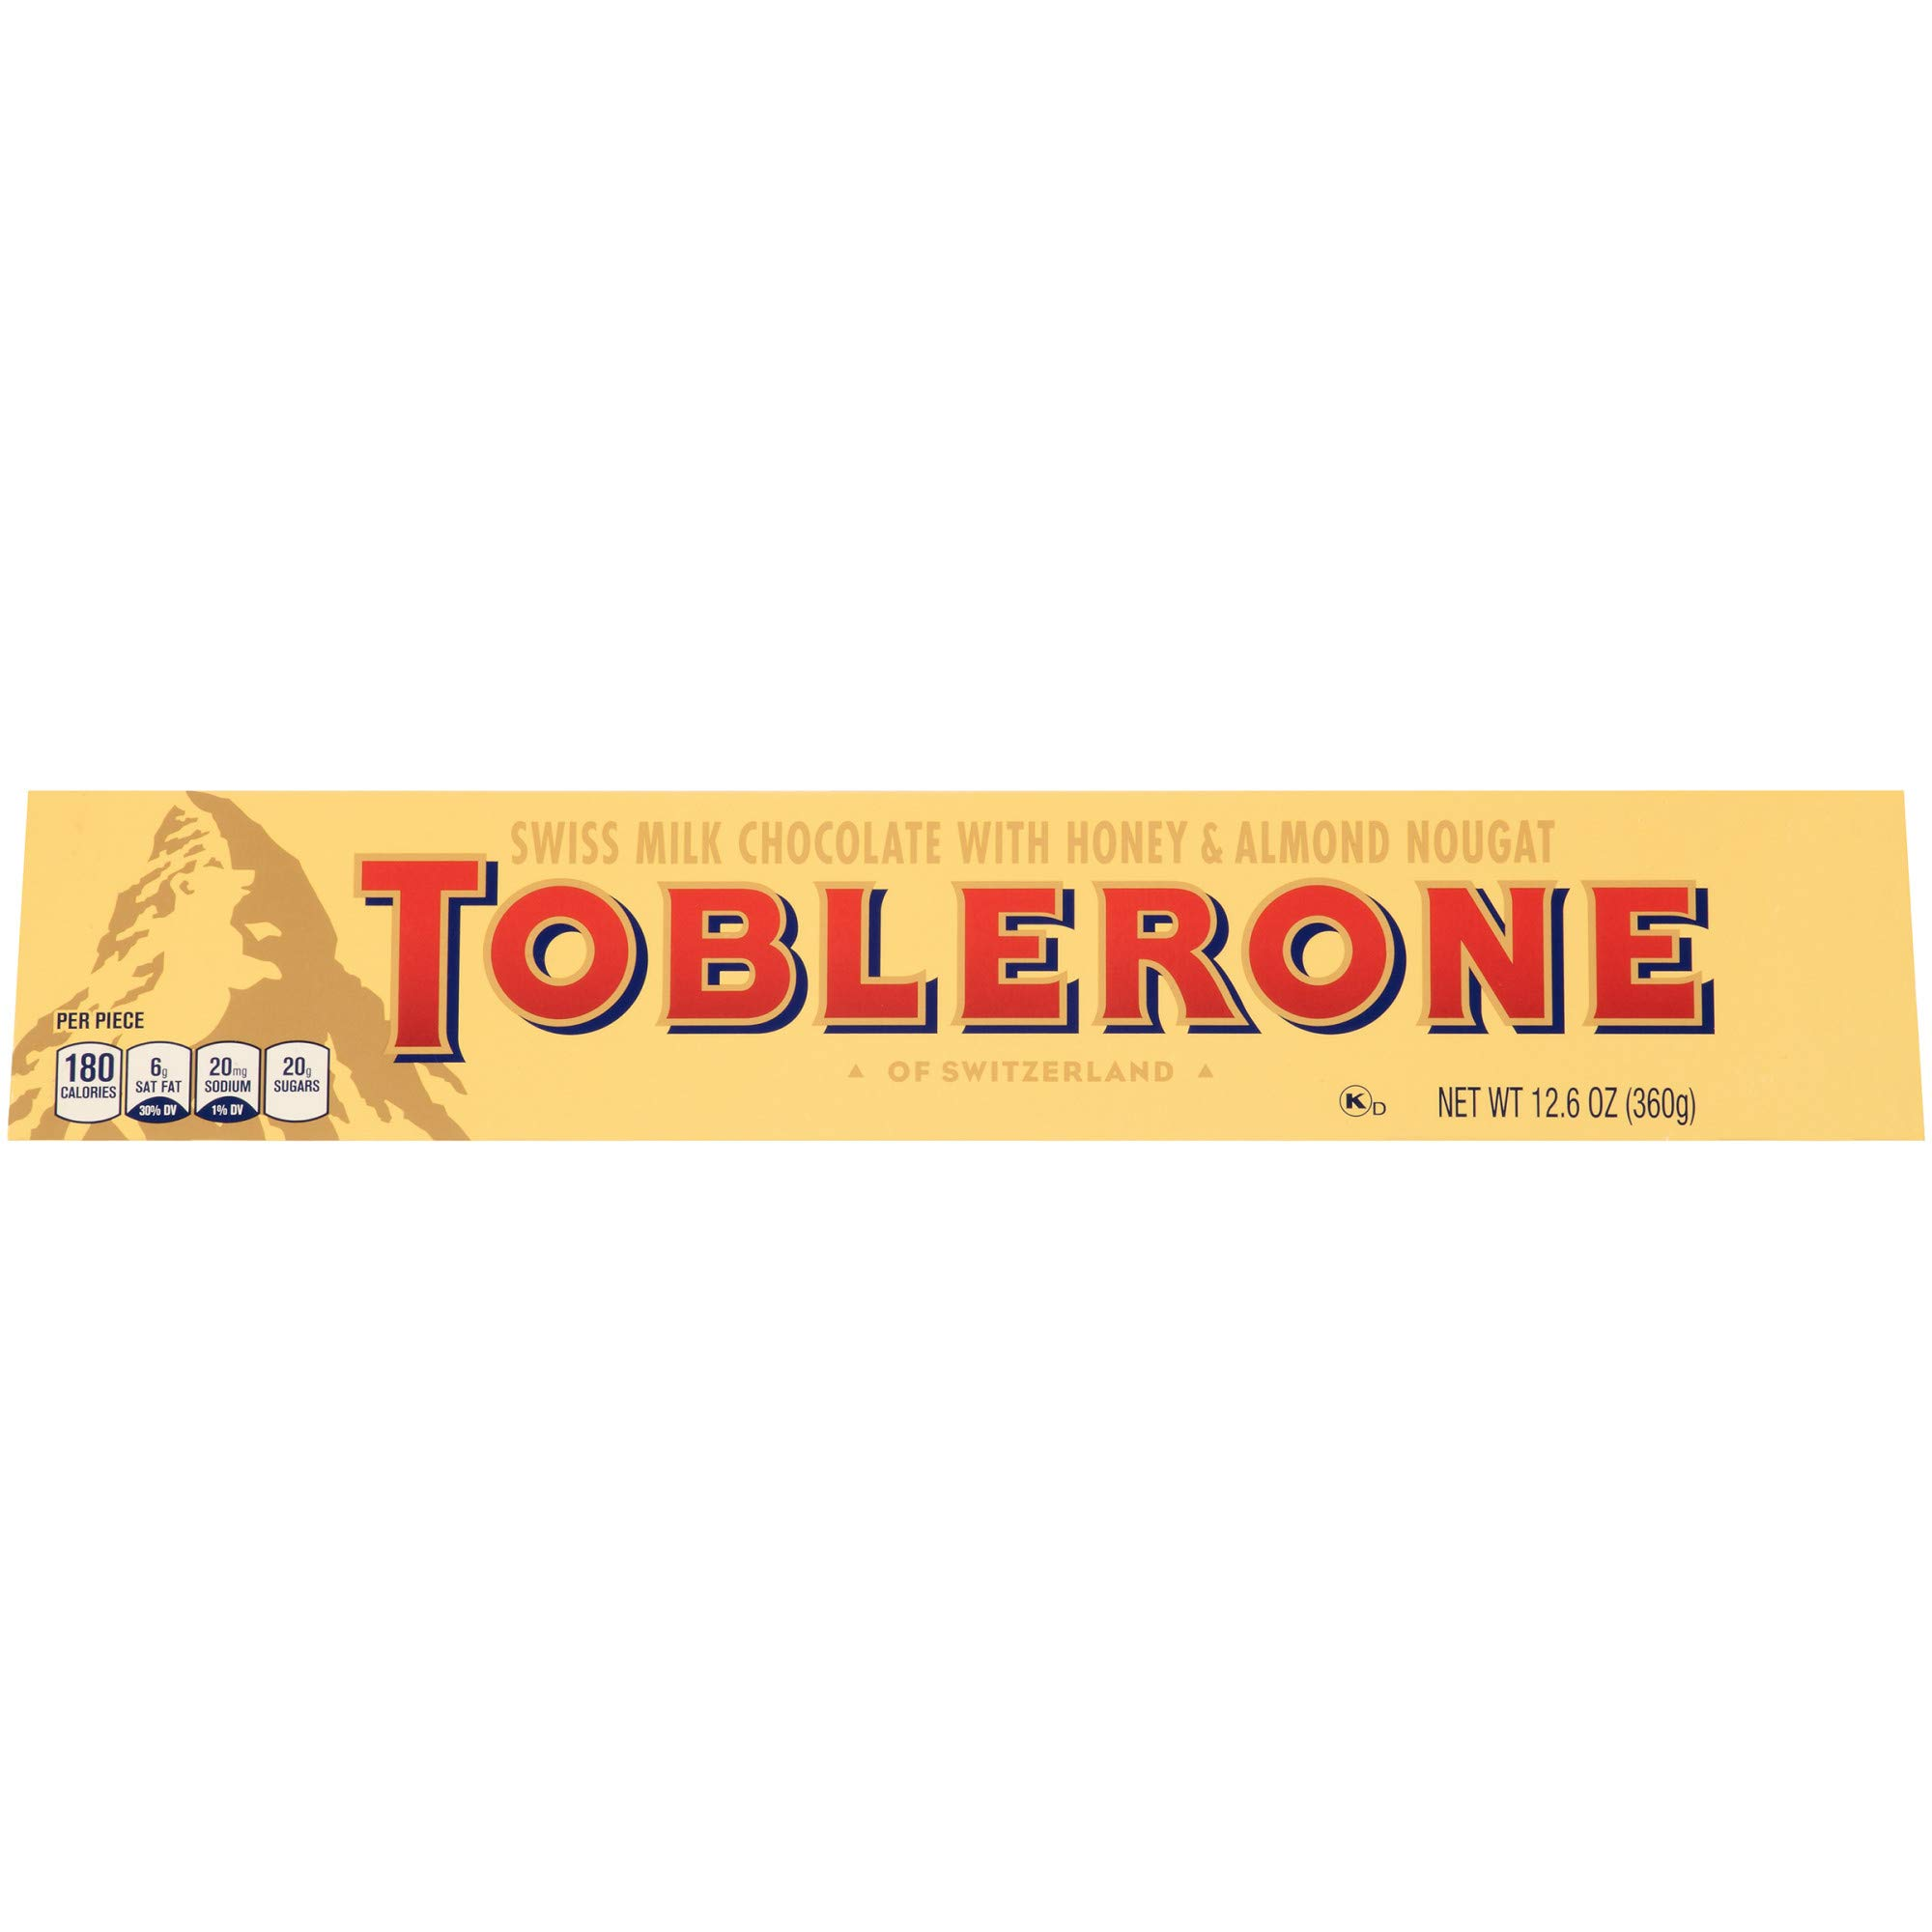 Toblerone Swiss Milk Chocolate Bar, 1 bar (12.6 oz)